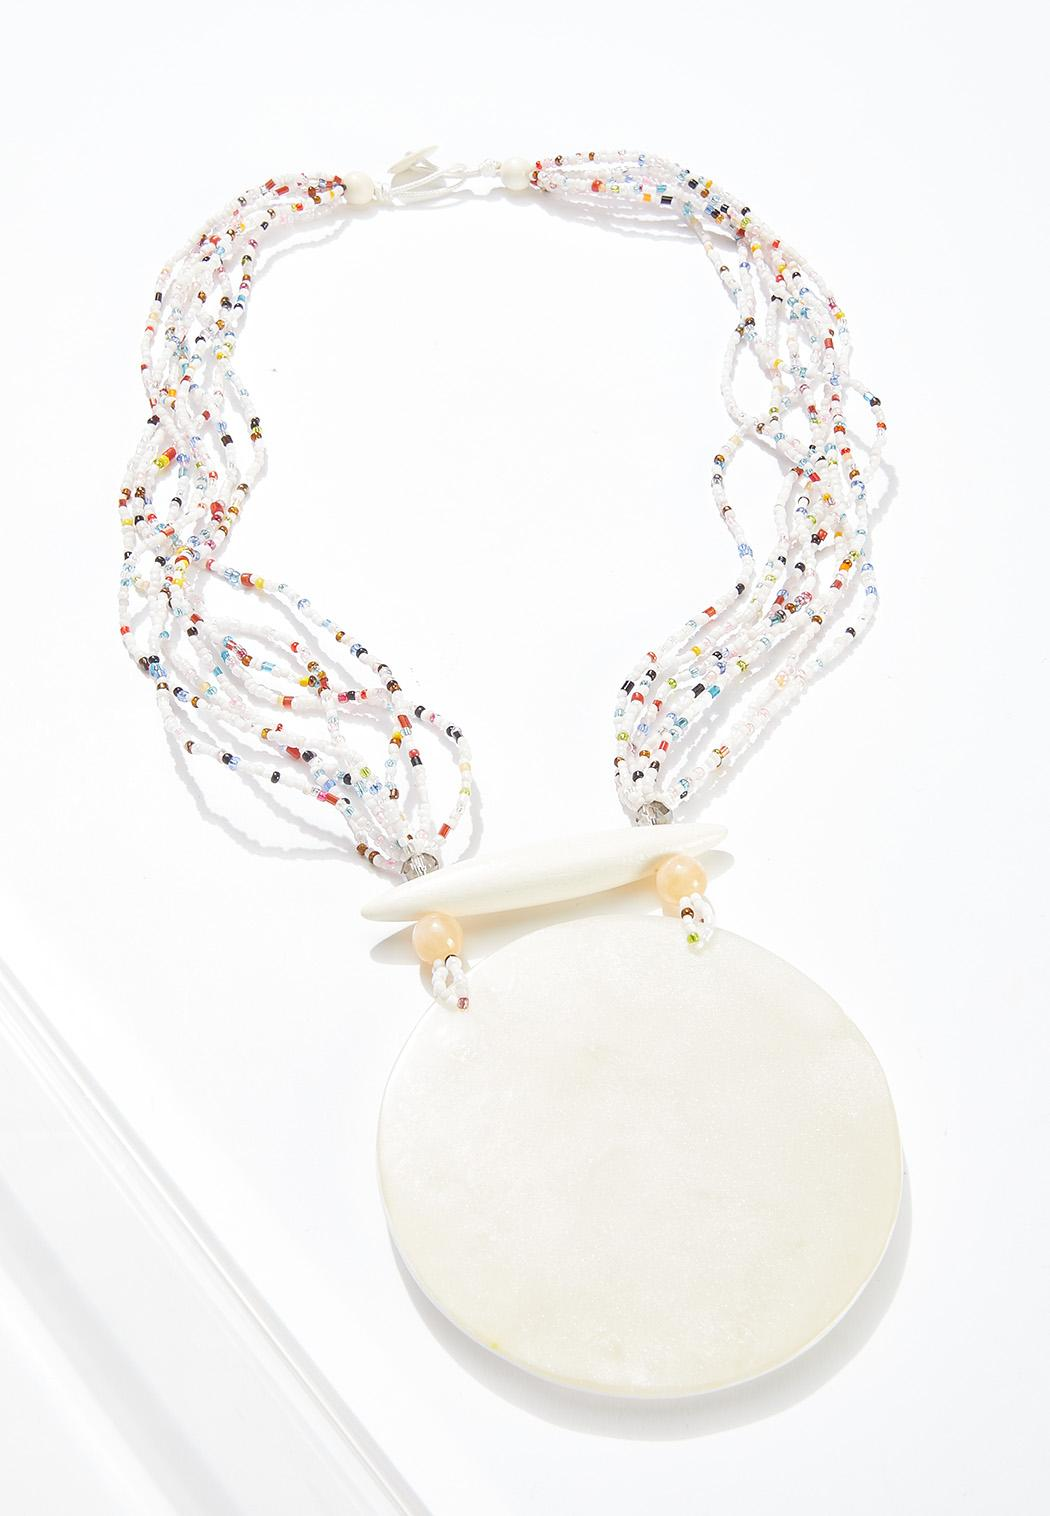 Pearly White Seed Bead Necklace